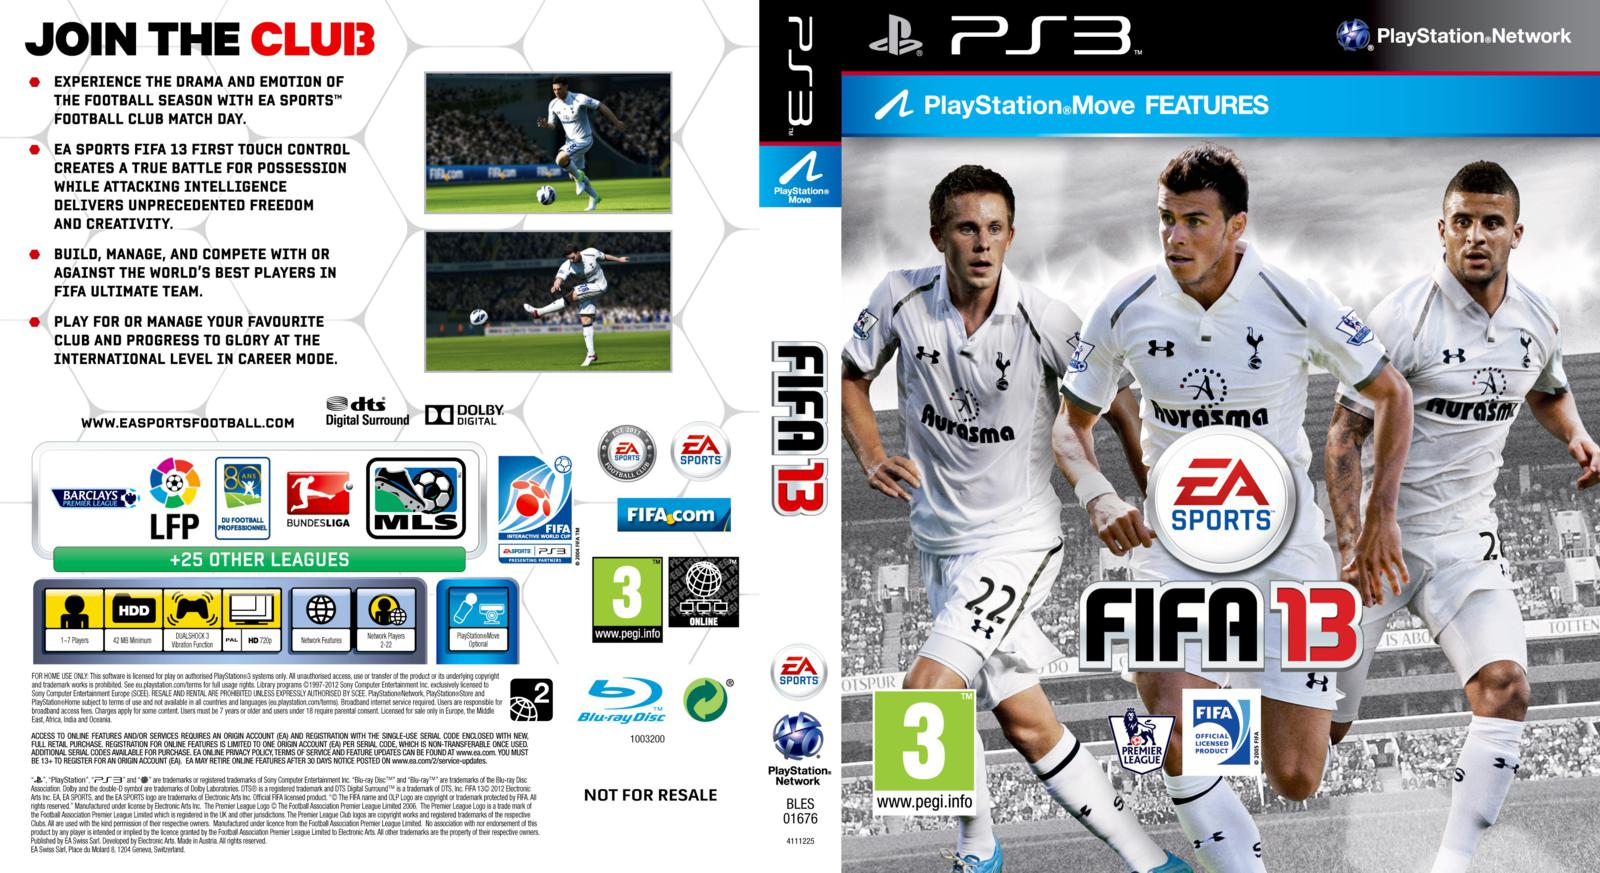 Ps3 Fifa 13 Is It Possible To Play With 7 Players